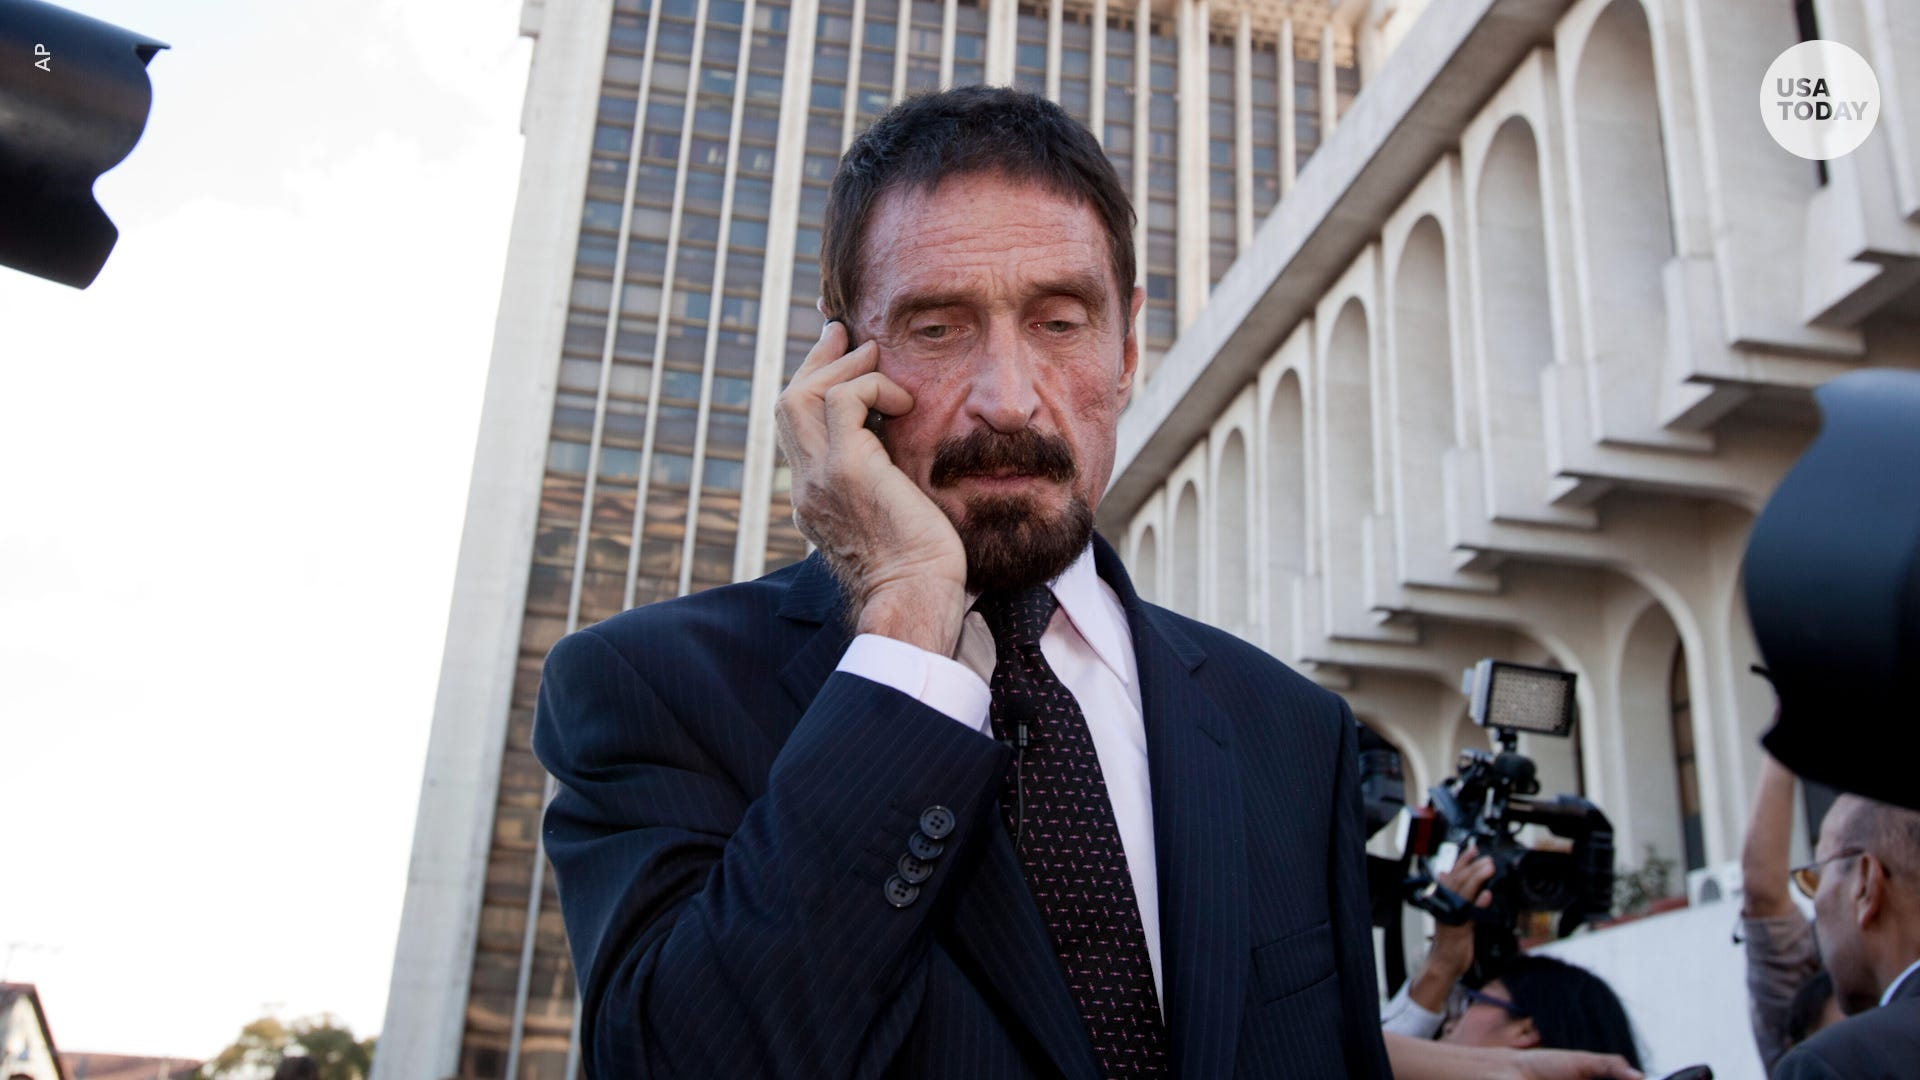 McAfee founder found dead in prison after Spanish court approves extradition to US